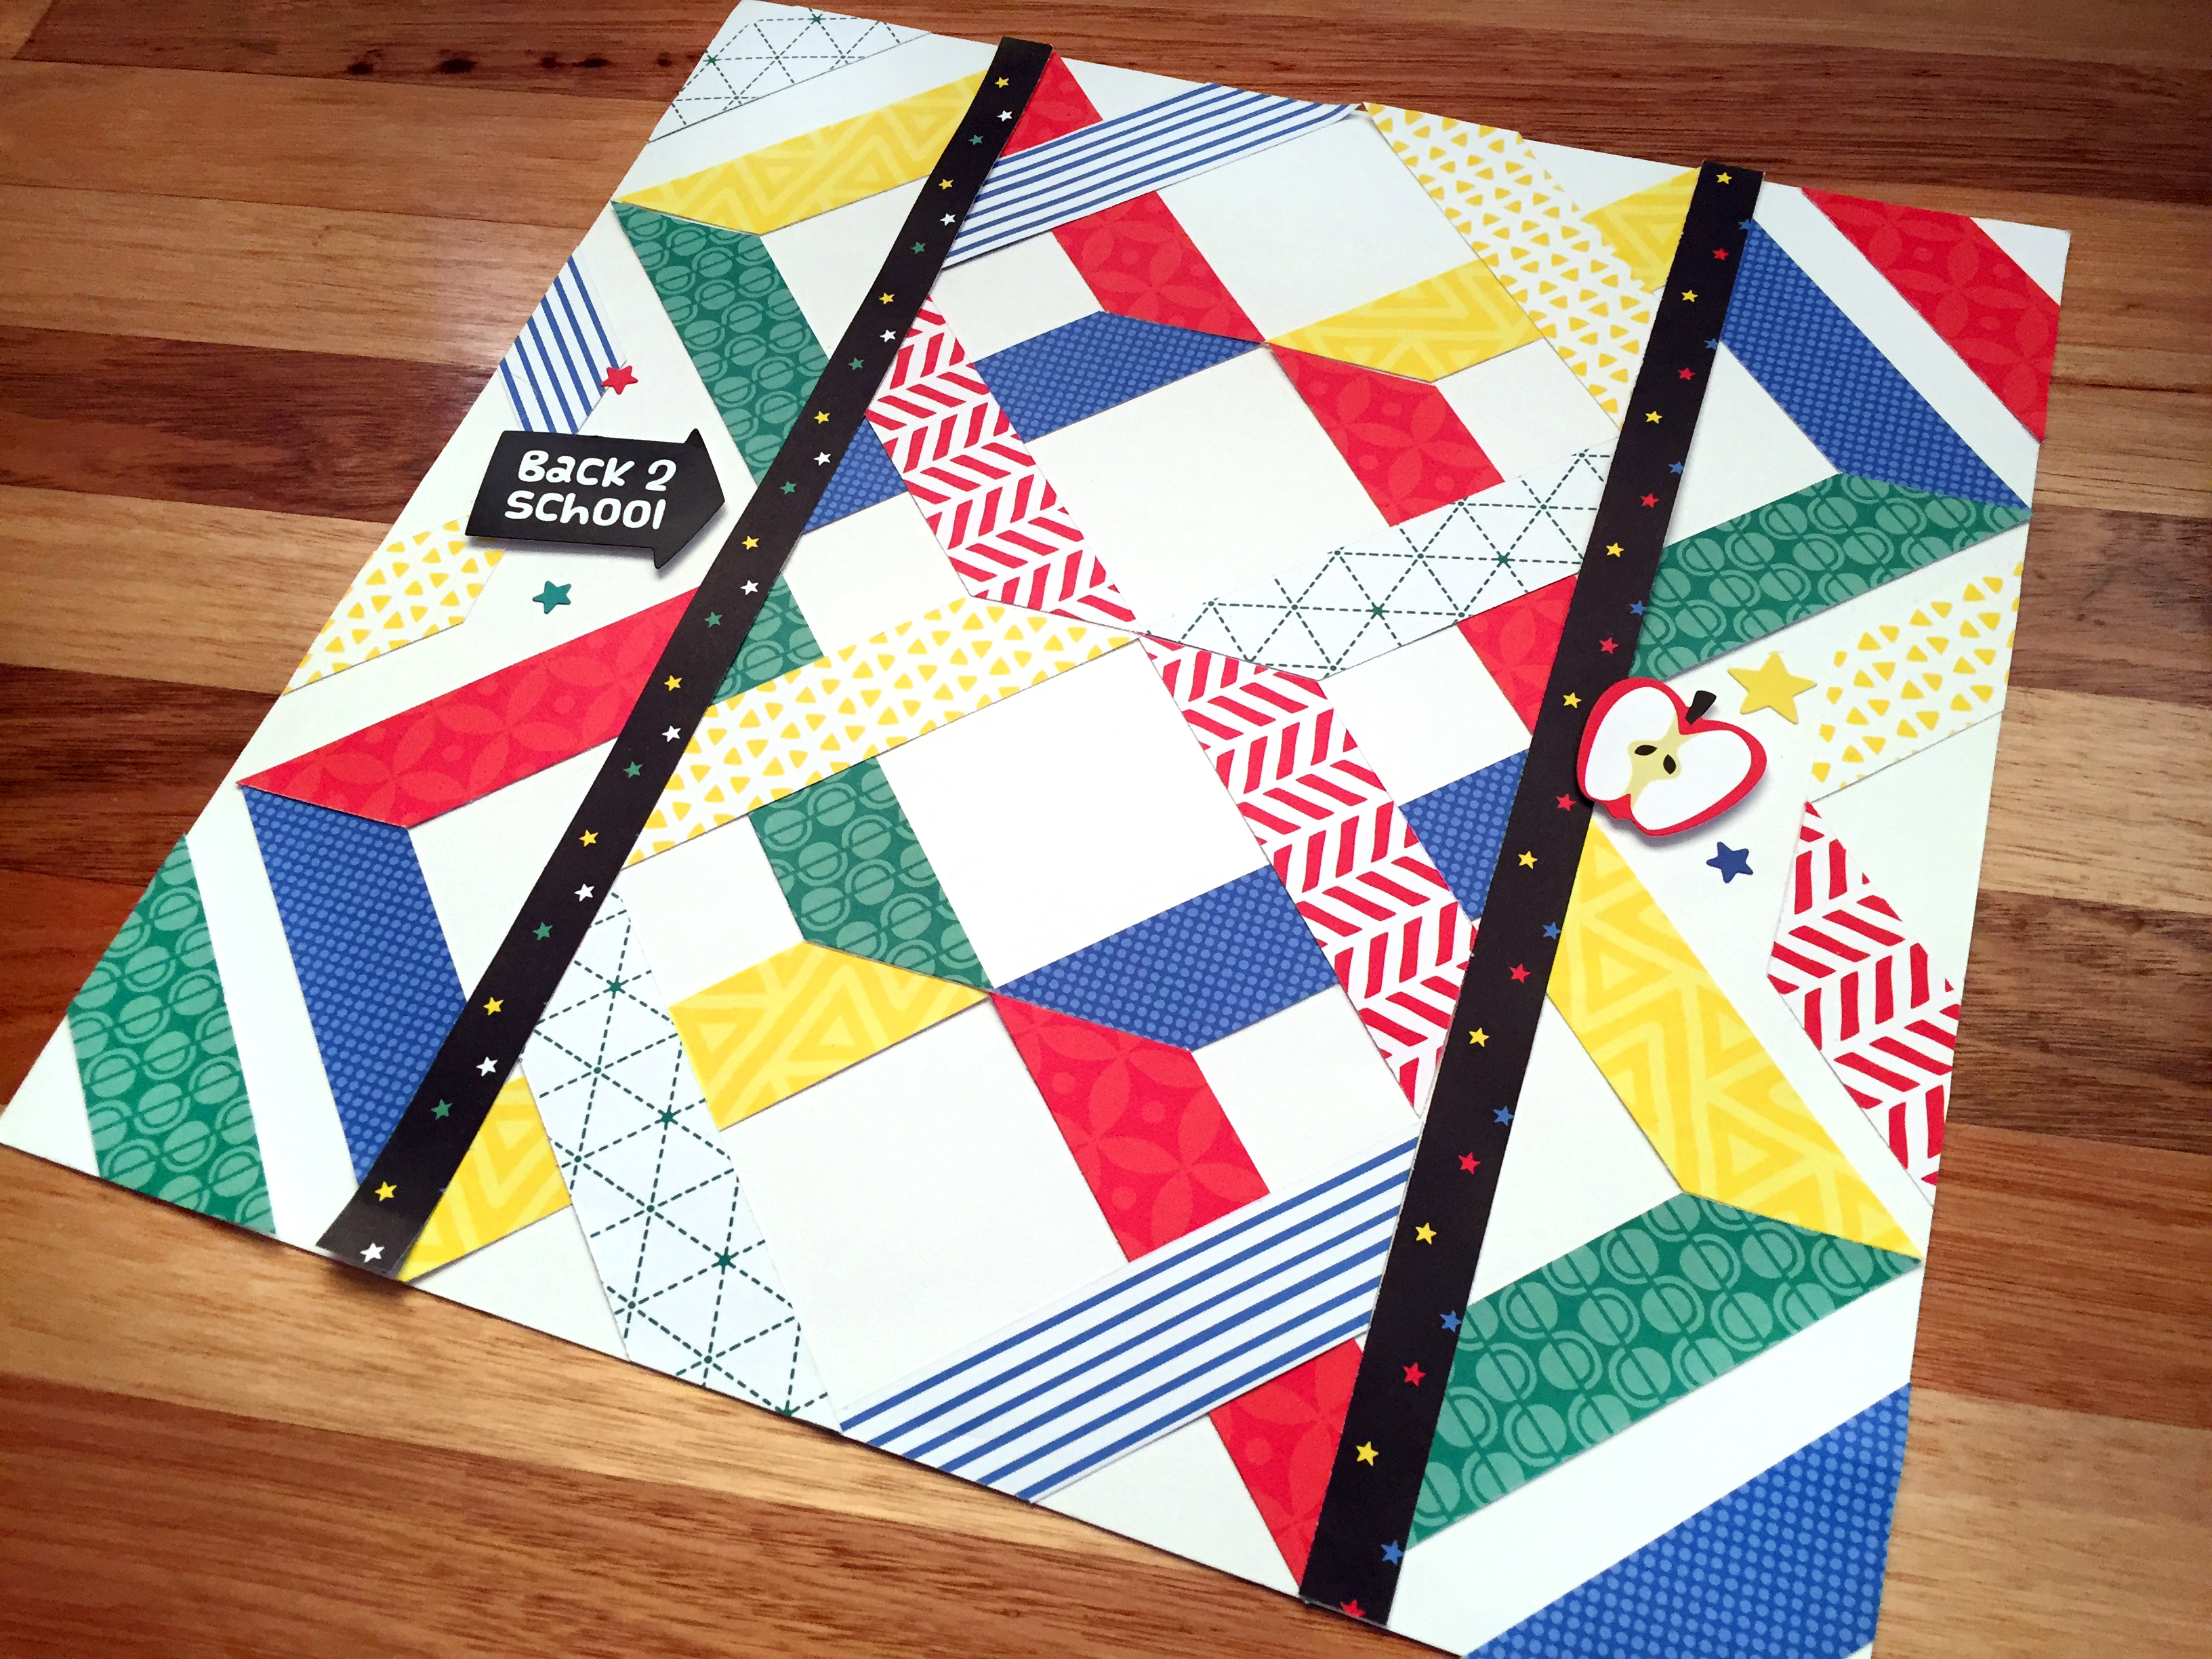 essentials-geometric-scrapbook-idea-process3-Creative-Memories